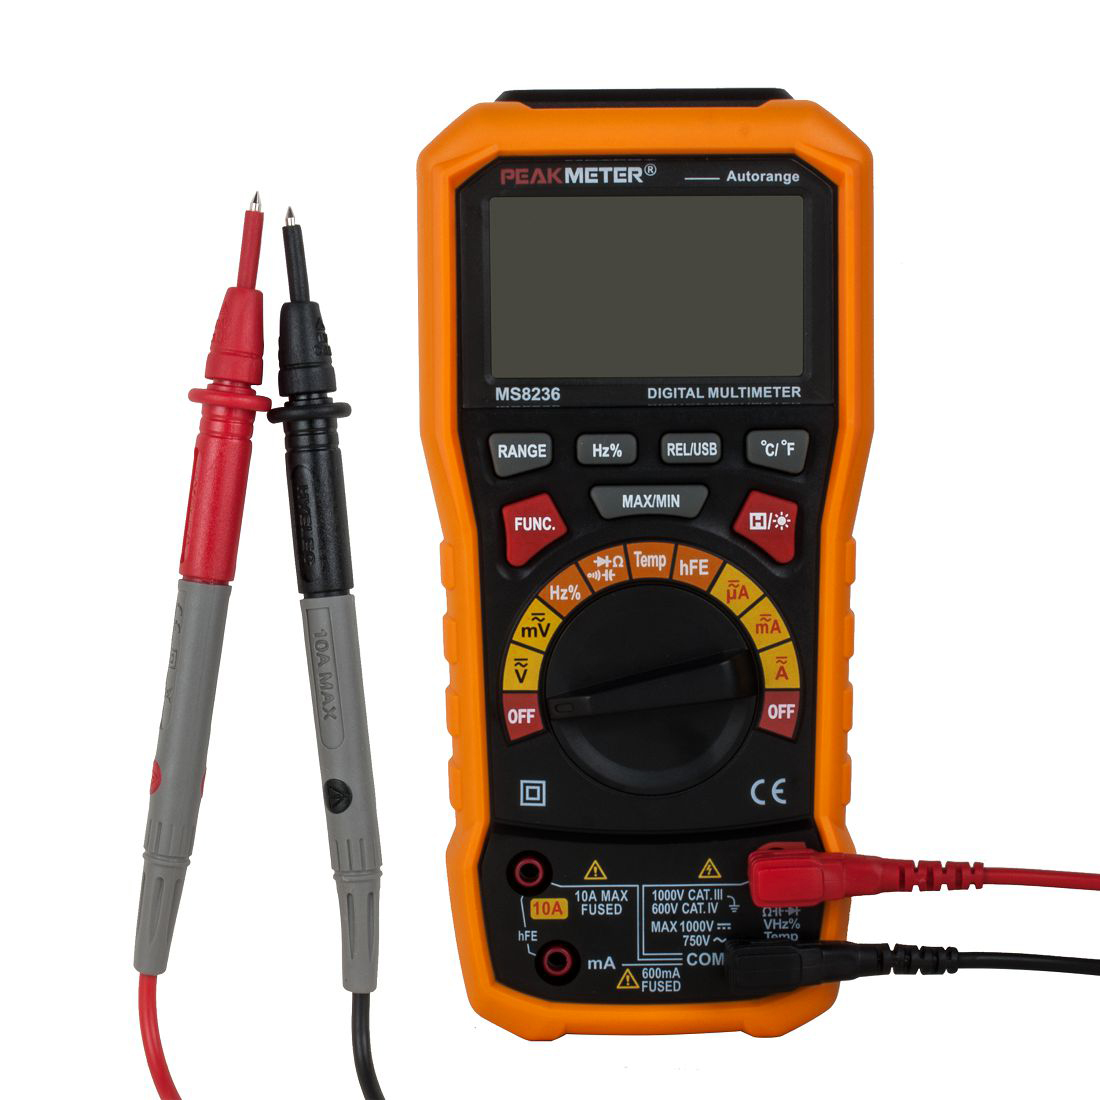 UXCELL Digital Multimeter Ac/ Voltage Current Resistance Capacitance Frequency Temperature Tester Meter 600mv/6v/60v/600v/1000v peakmeter pm18c digital multimeter measuring voltage current resistance capacitance frequency temperature hfe ncv live line te